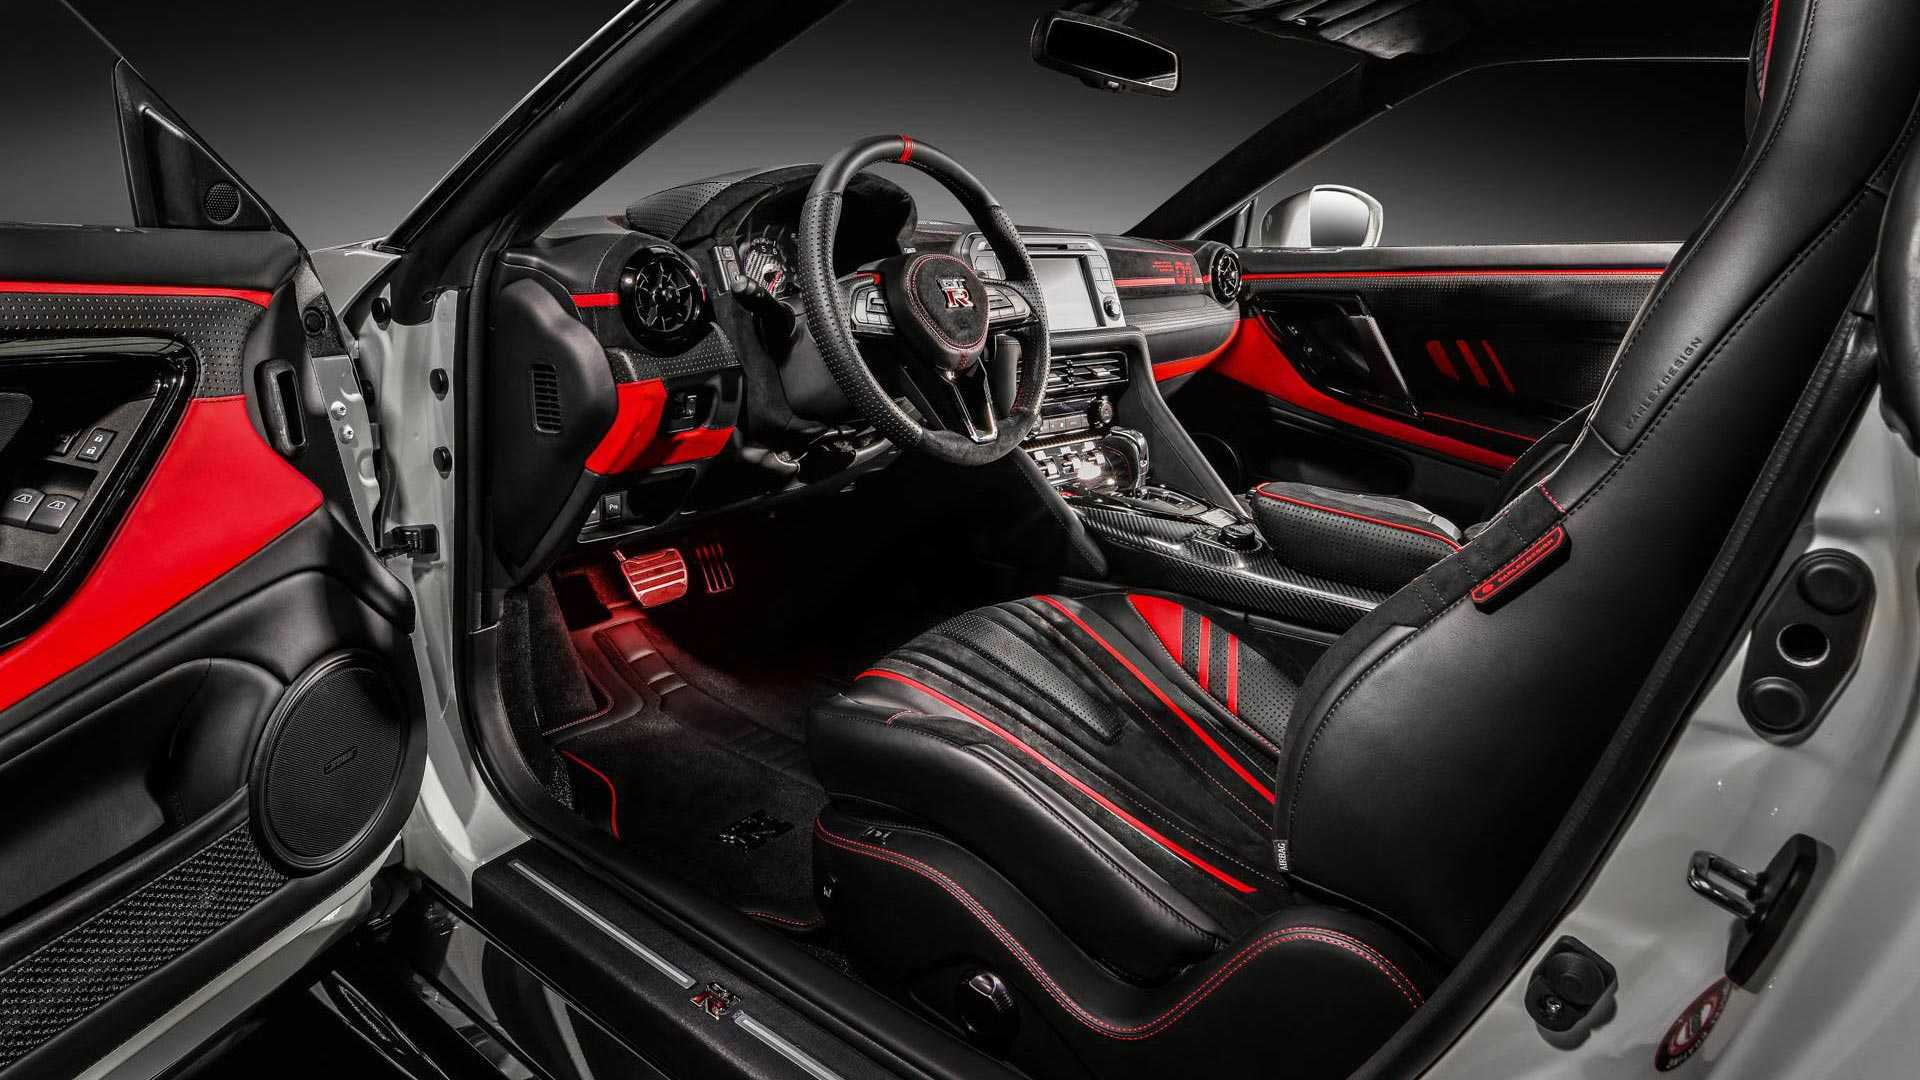 Nissan Gtr Interior >> Nissan Gt R Gets Vibrant Custom Interior From Carlex Design